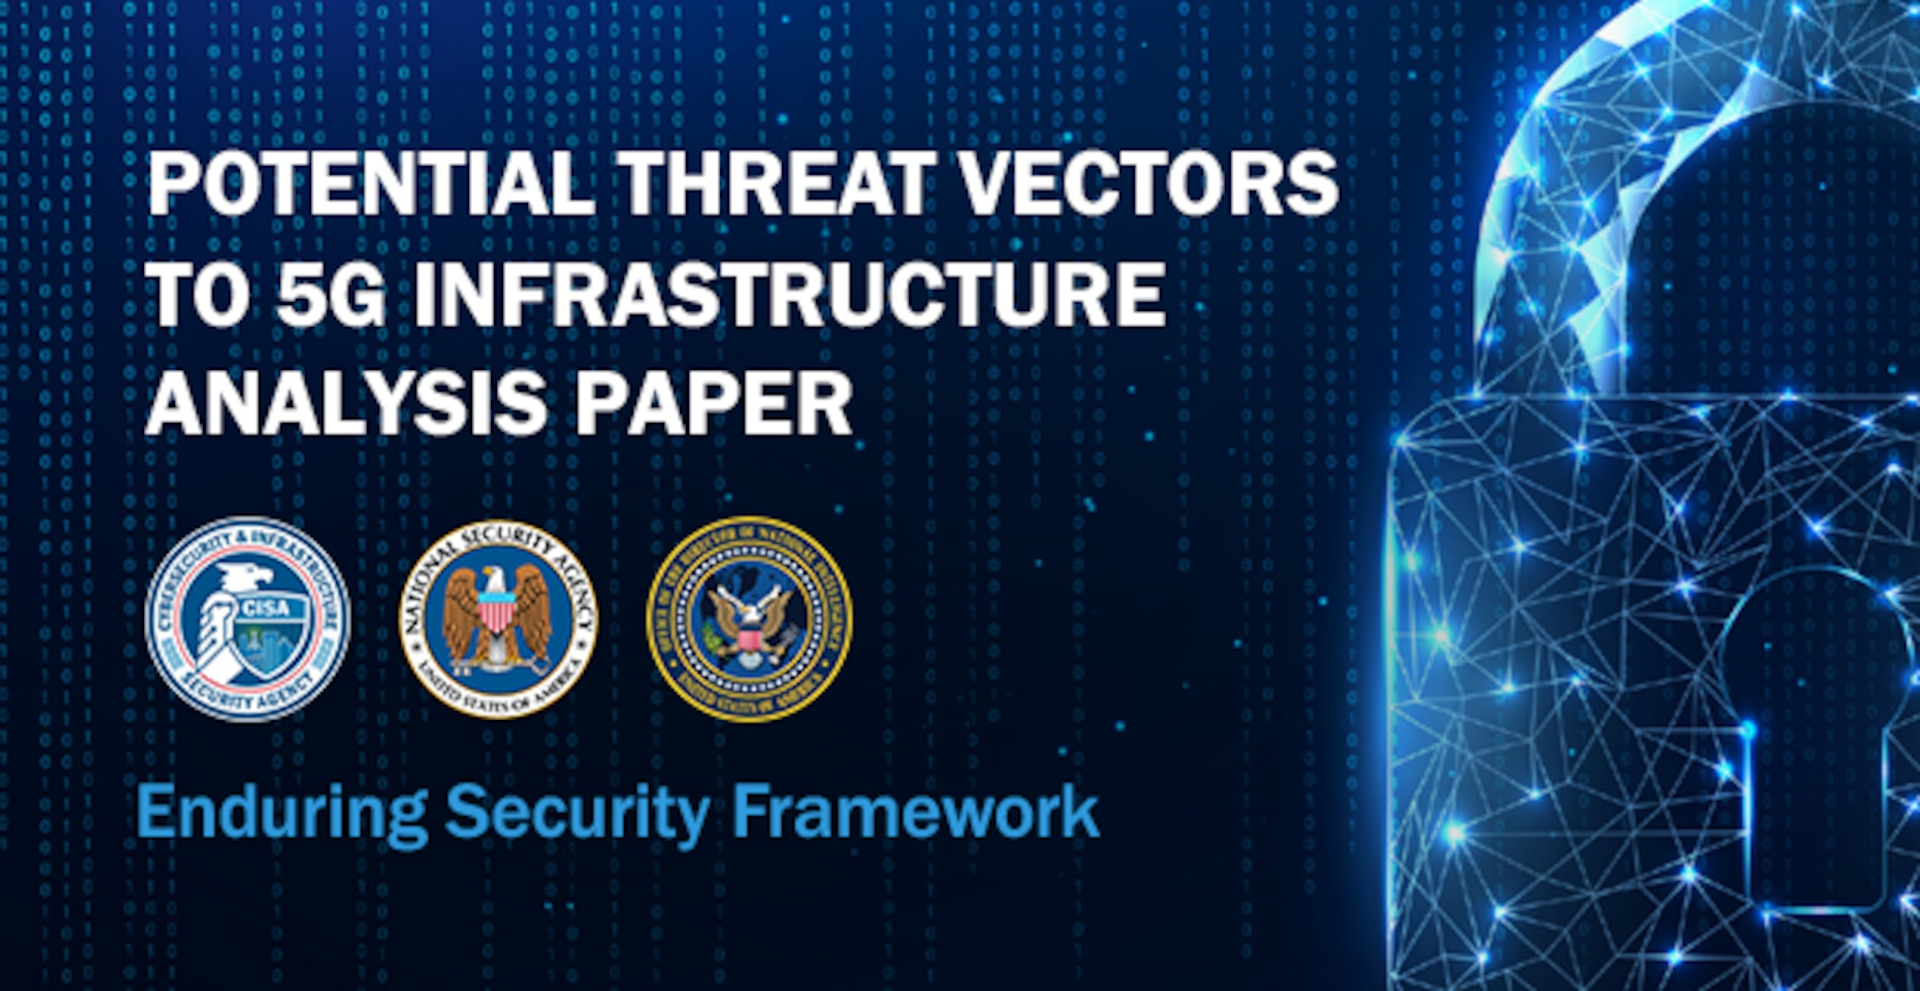 NSA Potential Threat Vectors to 5G Infrastructure Analysis Paper